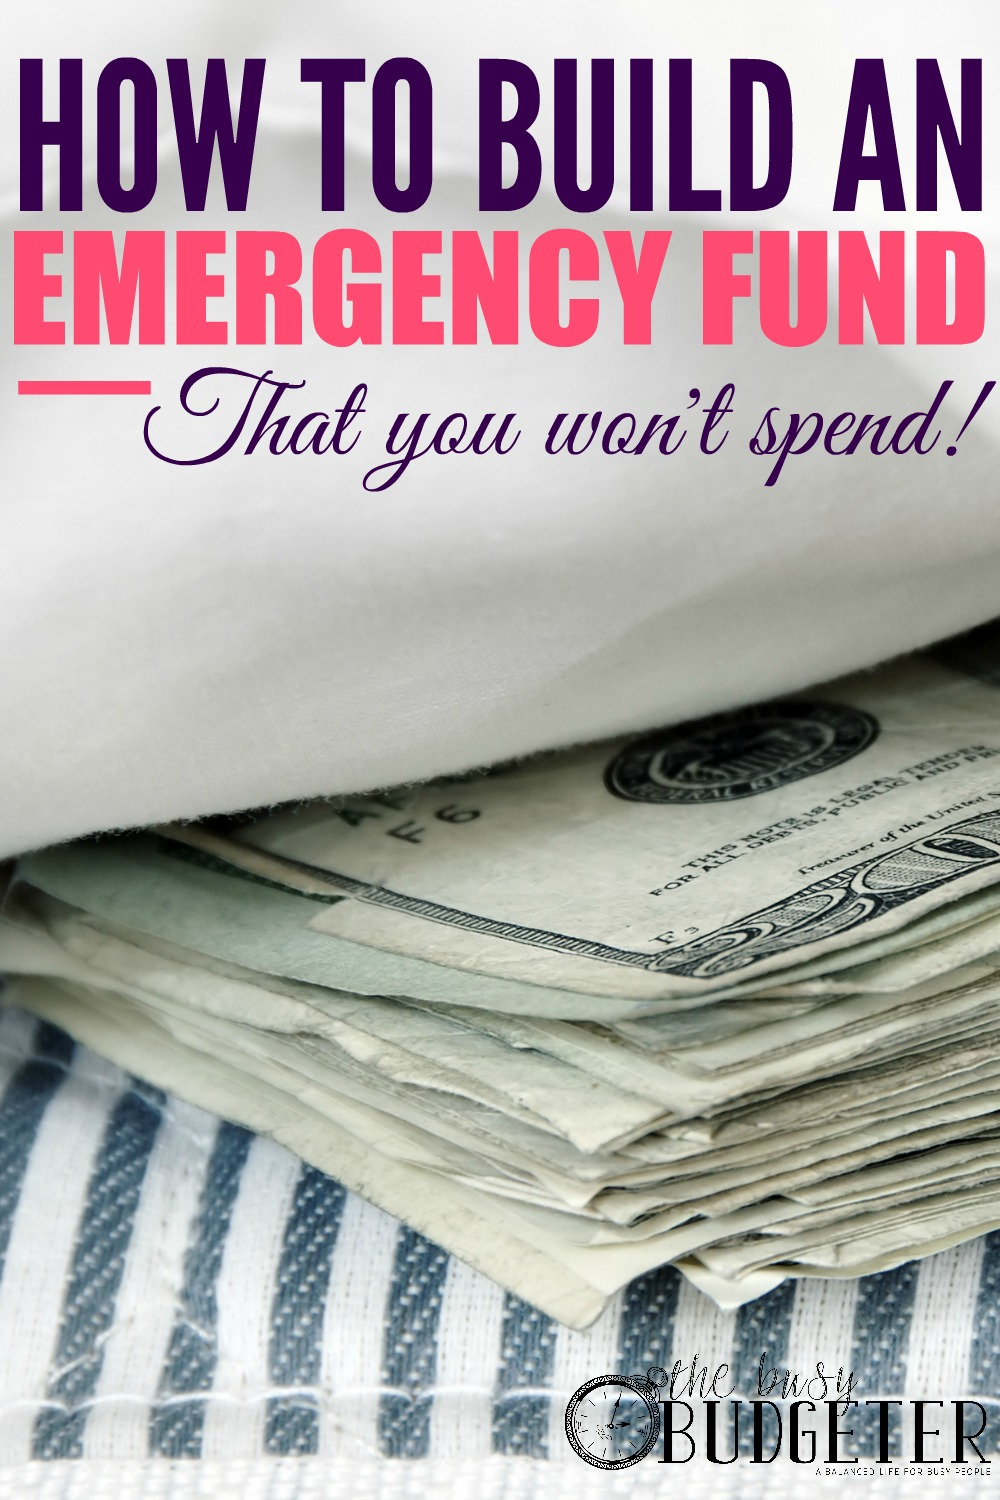 How to build an emergency fund that you won't. !!!! This makes SO much sense! I've been trying for three years to build an emergency fund but we keep spending it! I can't wait to sit down with Hubby tonight and show him this!